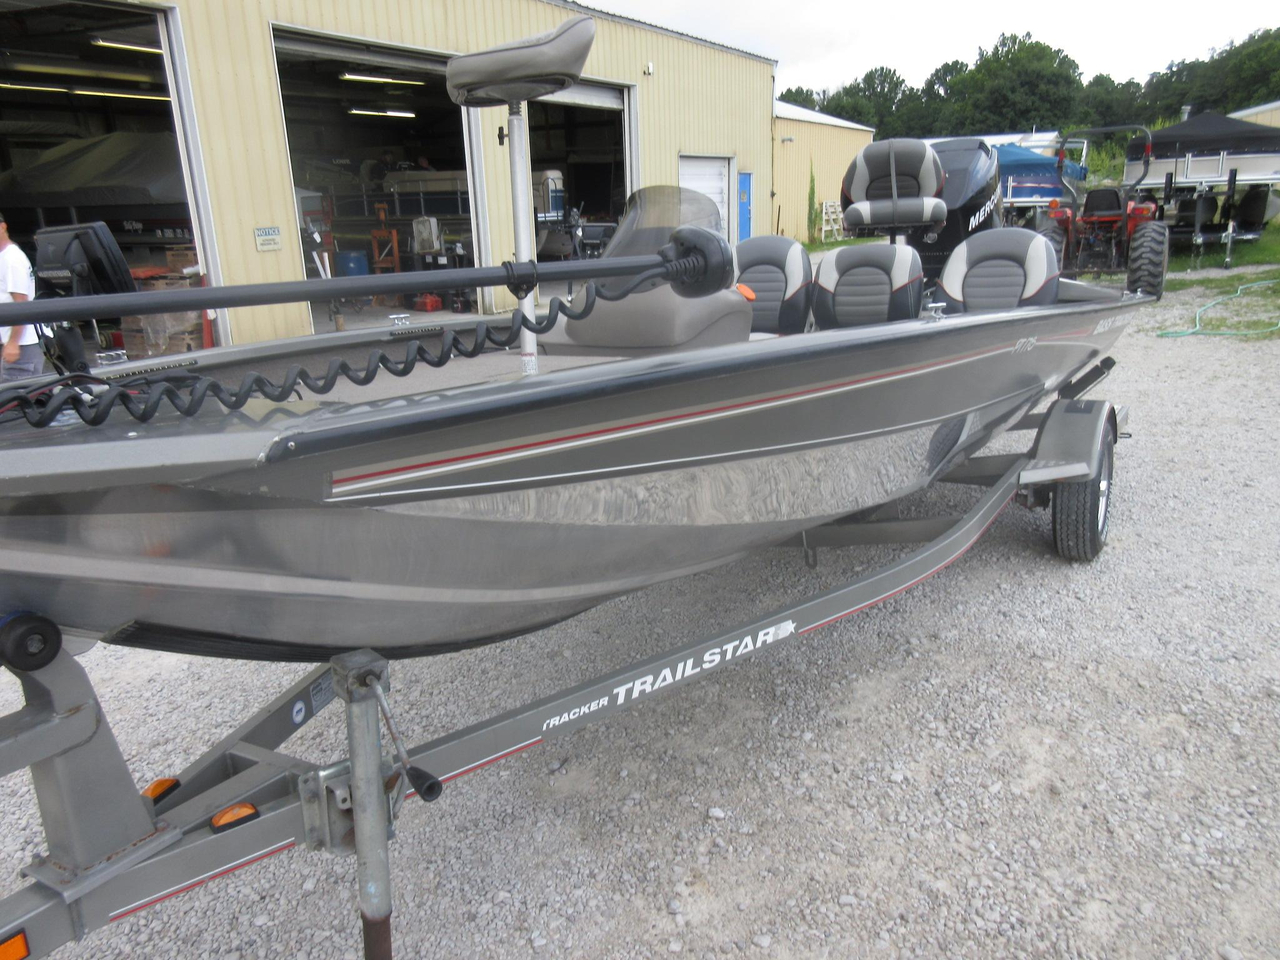 2006 used tracker pt 175 aluminum fishing boat for sale for Used aluminum fishing boats